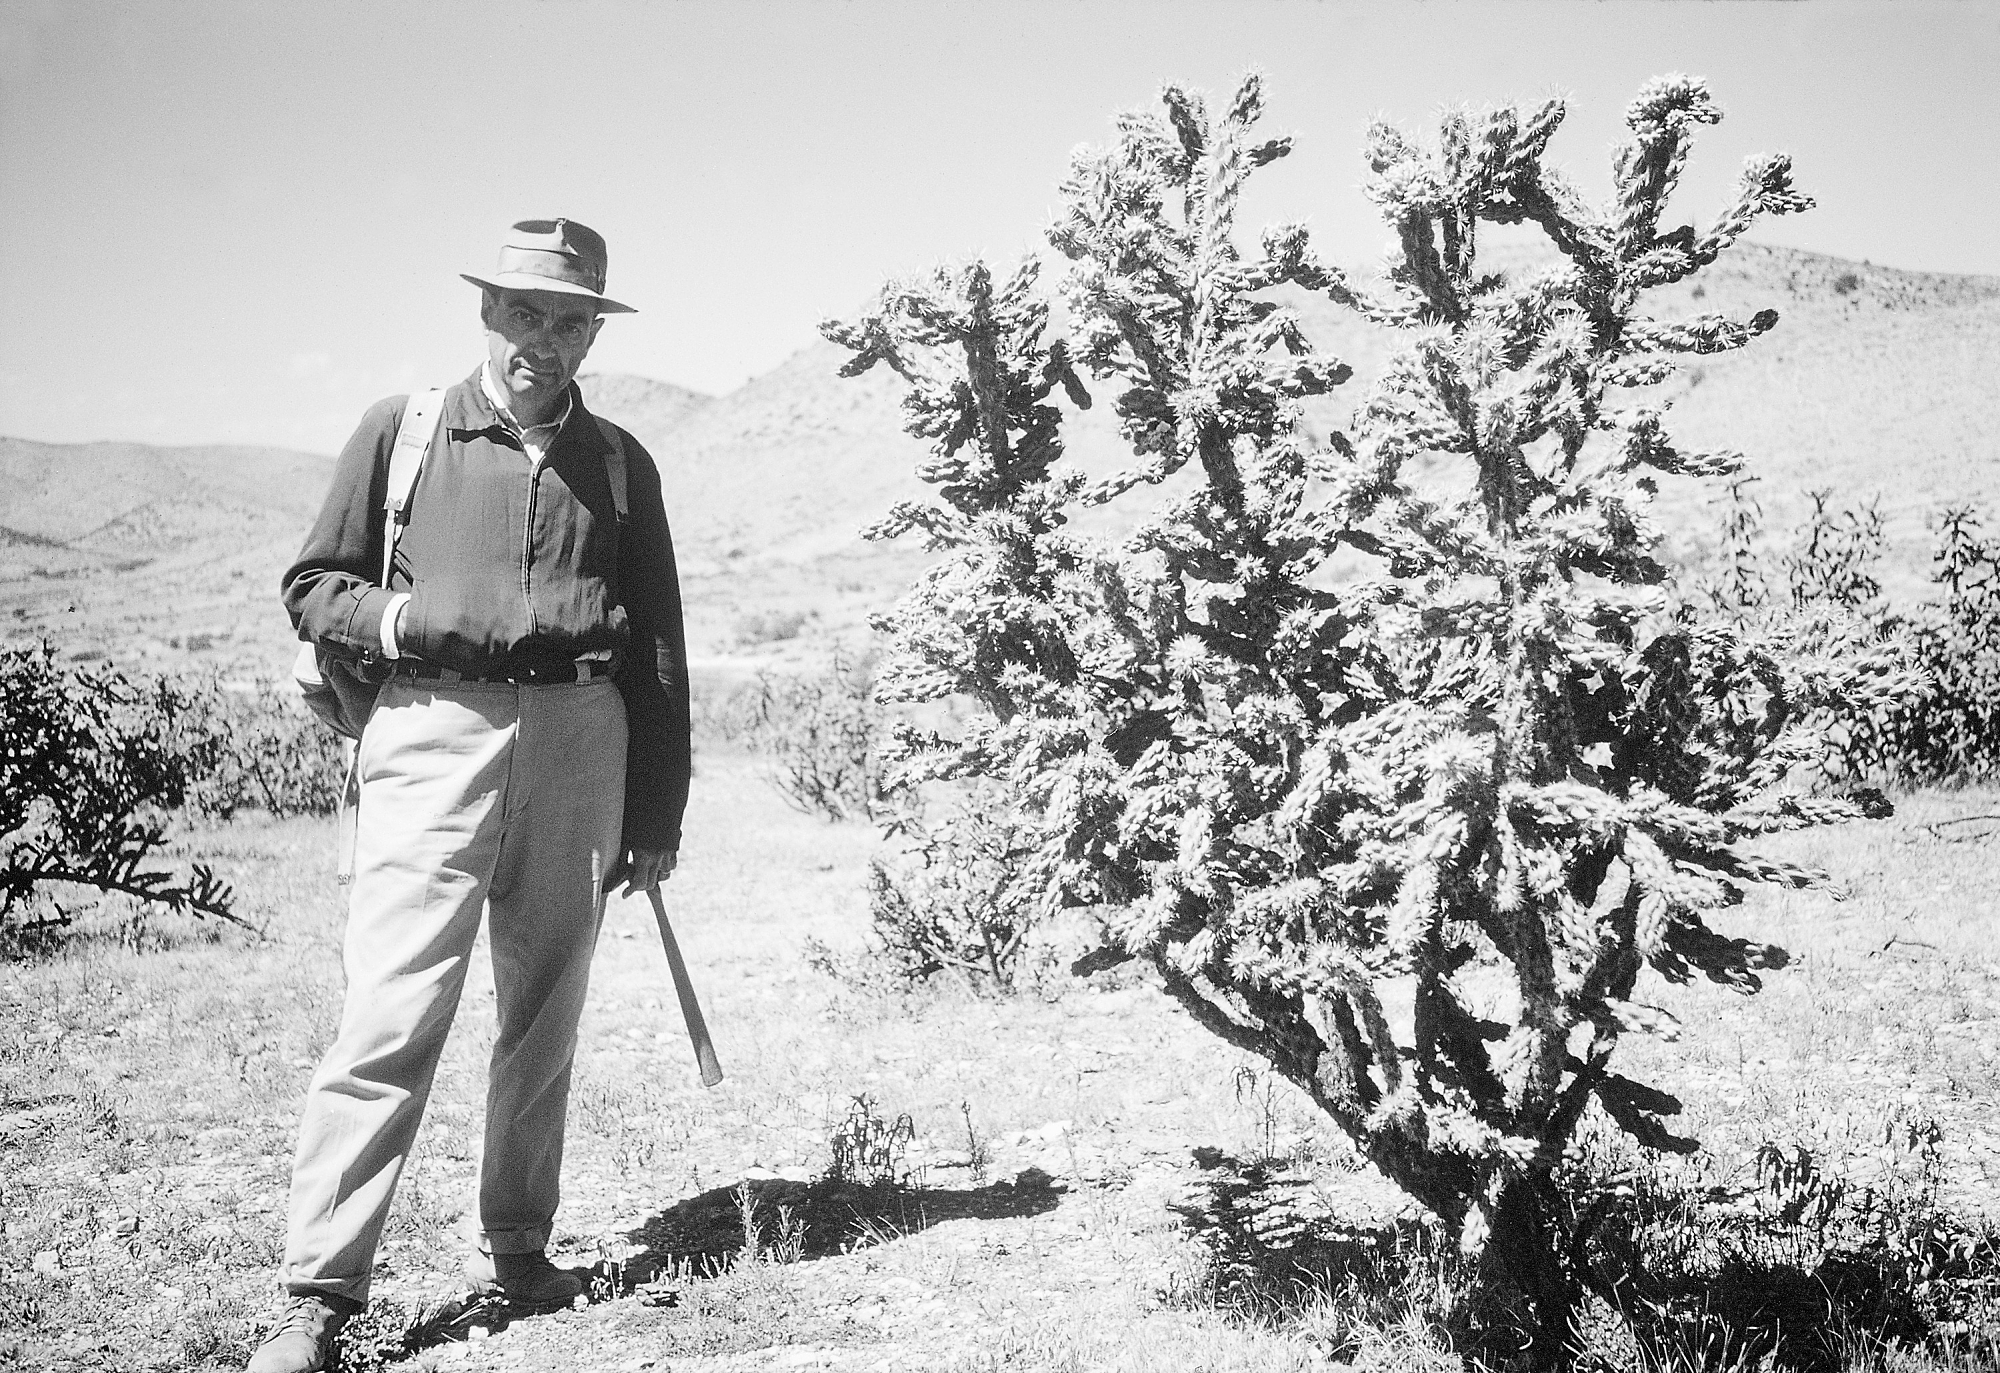 Paleobiologist G. Arthur Cooper conducting filed work at Glass Mountains, Texas, 1957.